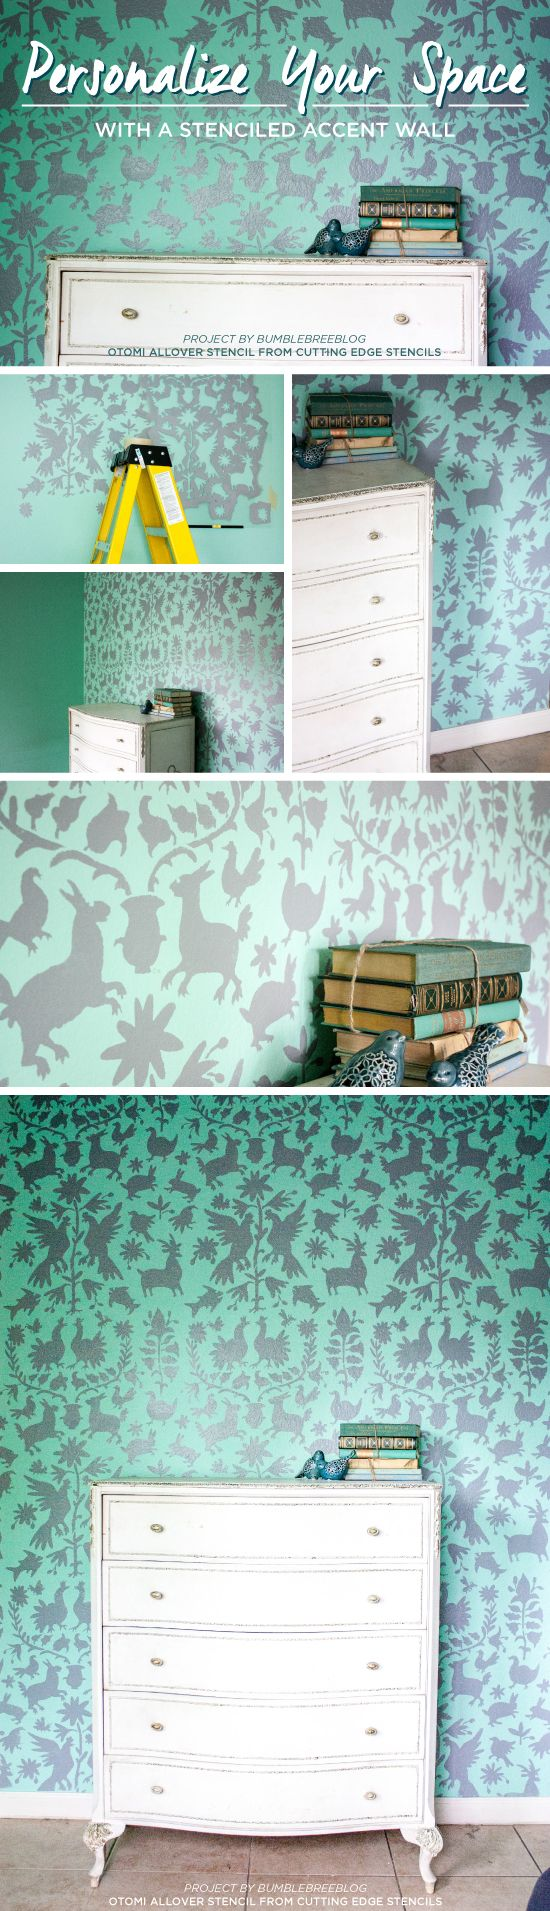 Cutting Edge Stencils shares a DIY stenciled accent wall in mint and gray using the Otomi Allover Stencil. http://www.cuttingedgestencils.com/otomi-tribal-wall-pattern-stencil.html